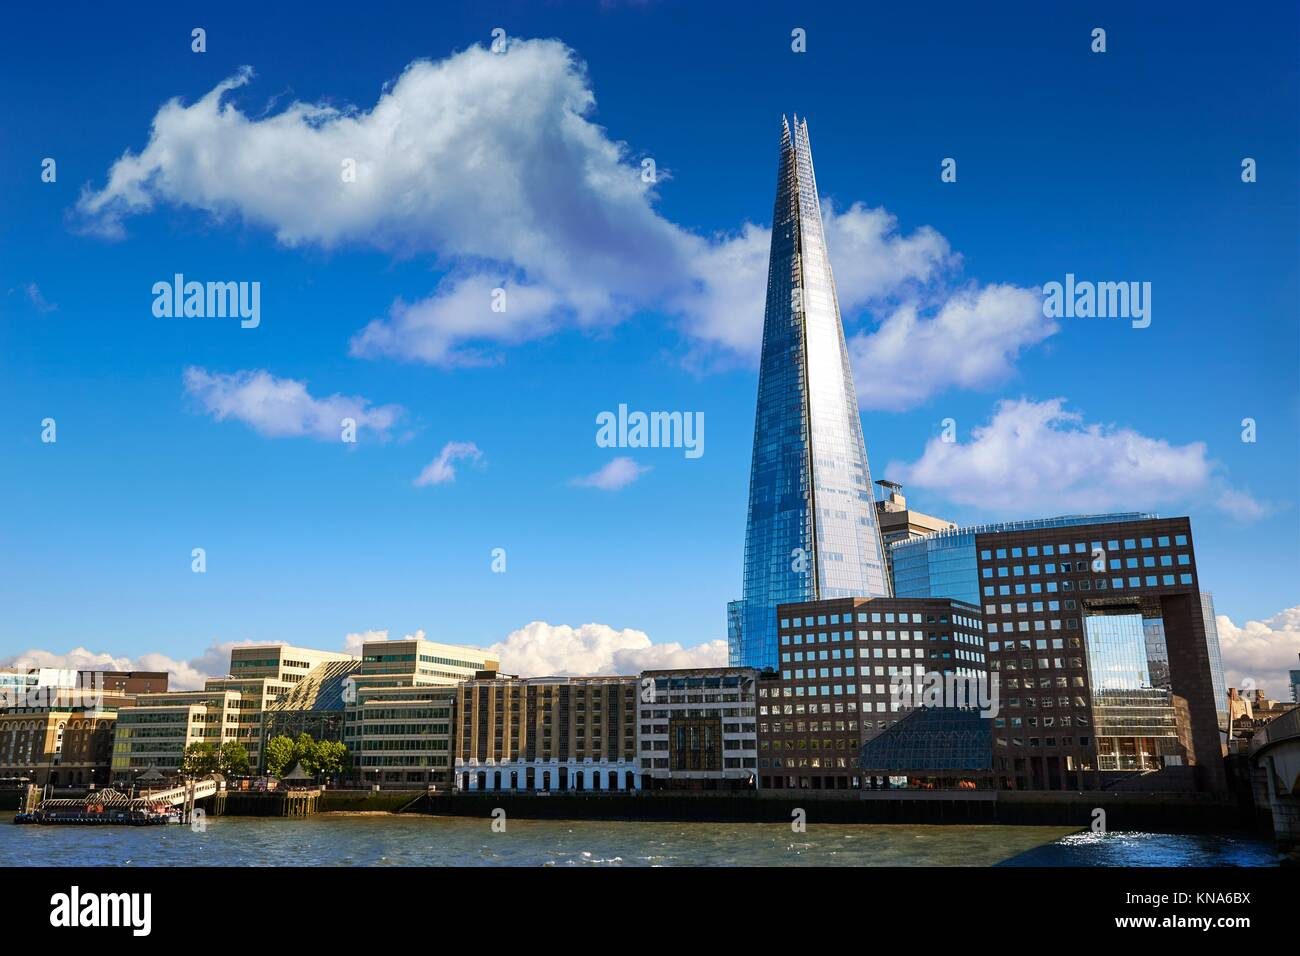 London skyline Shard on Thames river in UK. - Stock Image